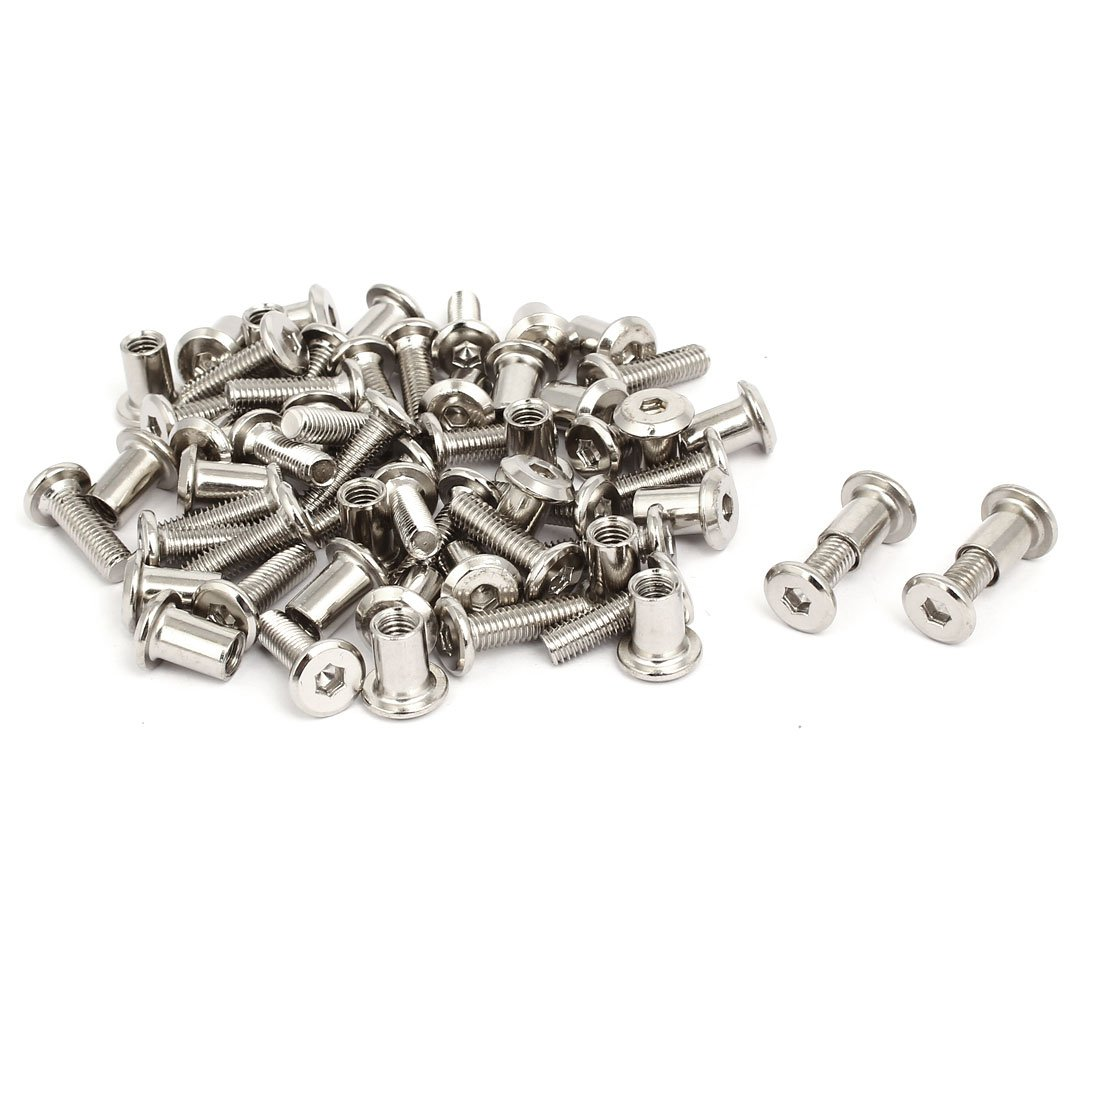 uxcell M6x20mm Male Thread Cupboard Cabinet Socket Hex Screw Post Silver Tone 30pcs